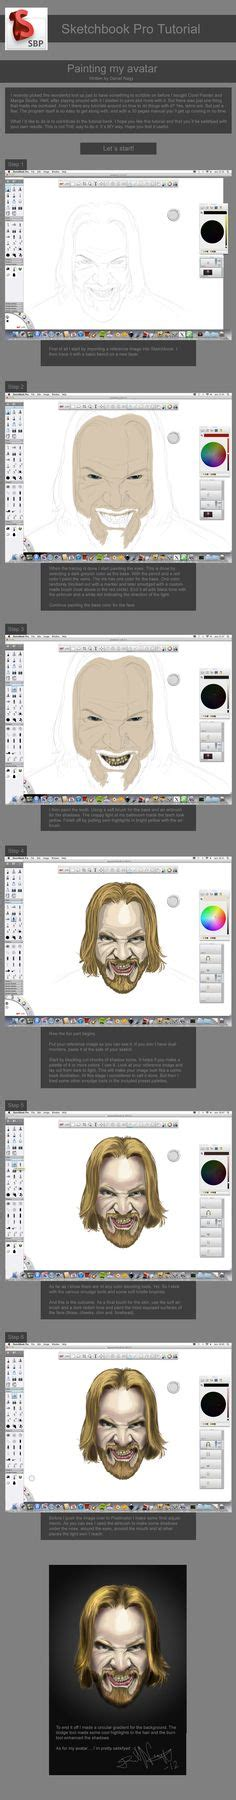 sketchbook pro tips how to draw hair sketchbook pro tutorial